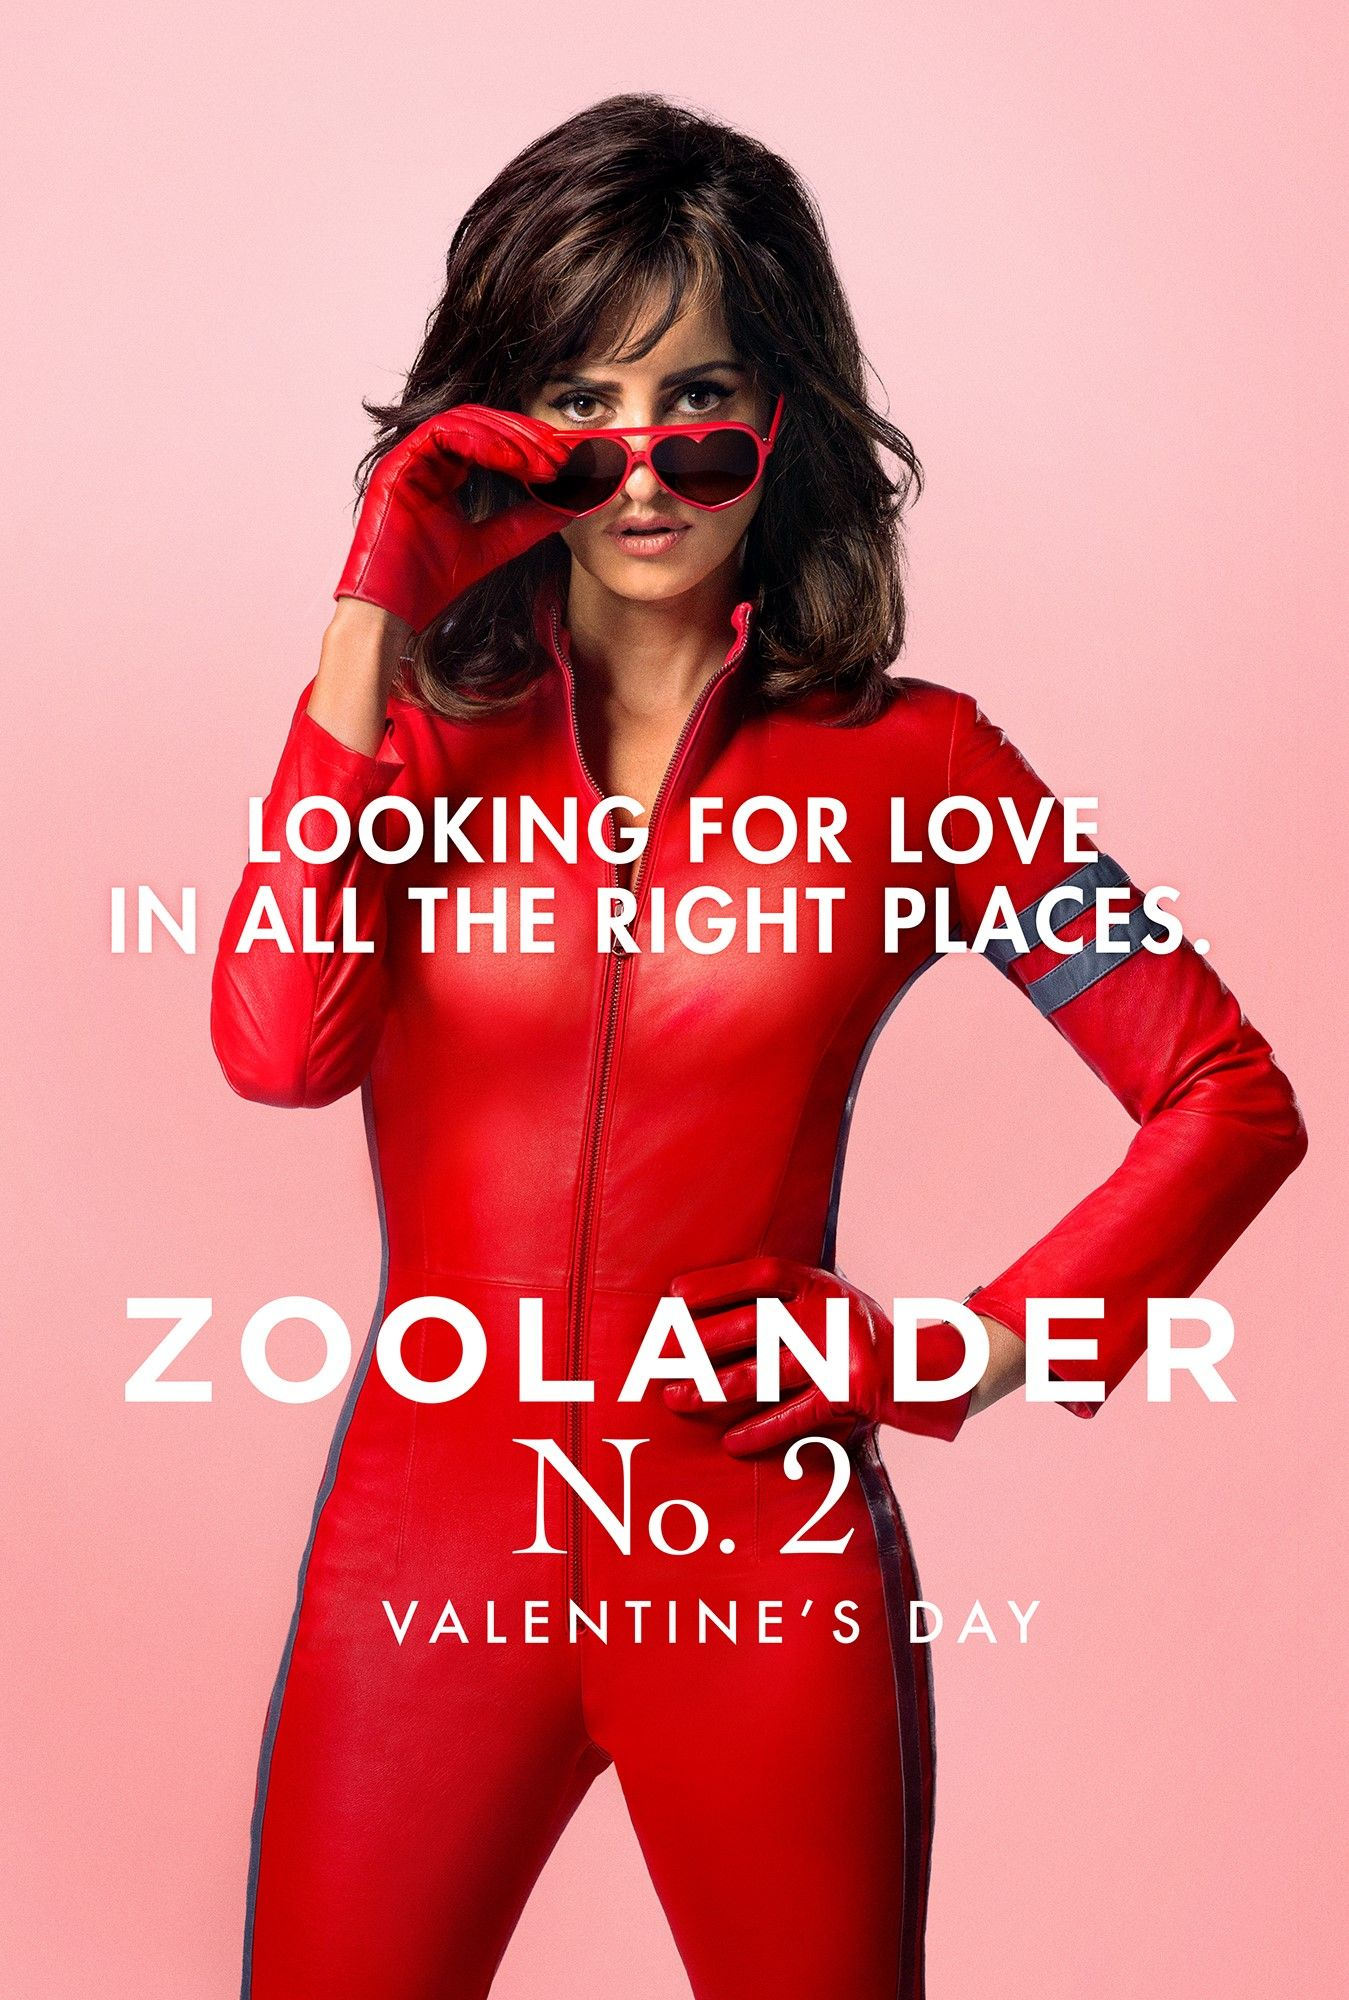 Looking for love in all the right places  Valentina  ZOOLANDER